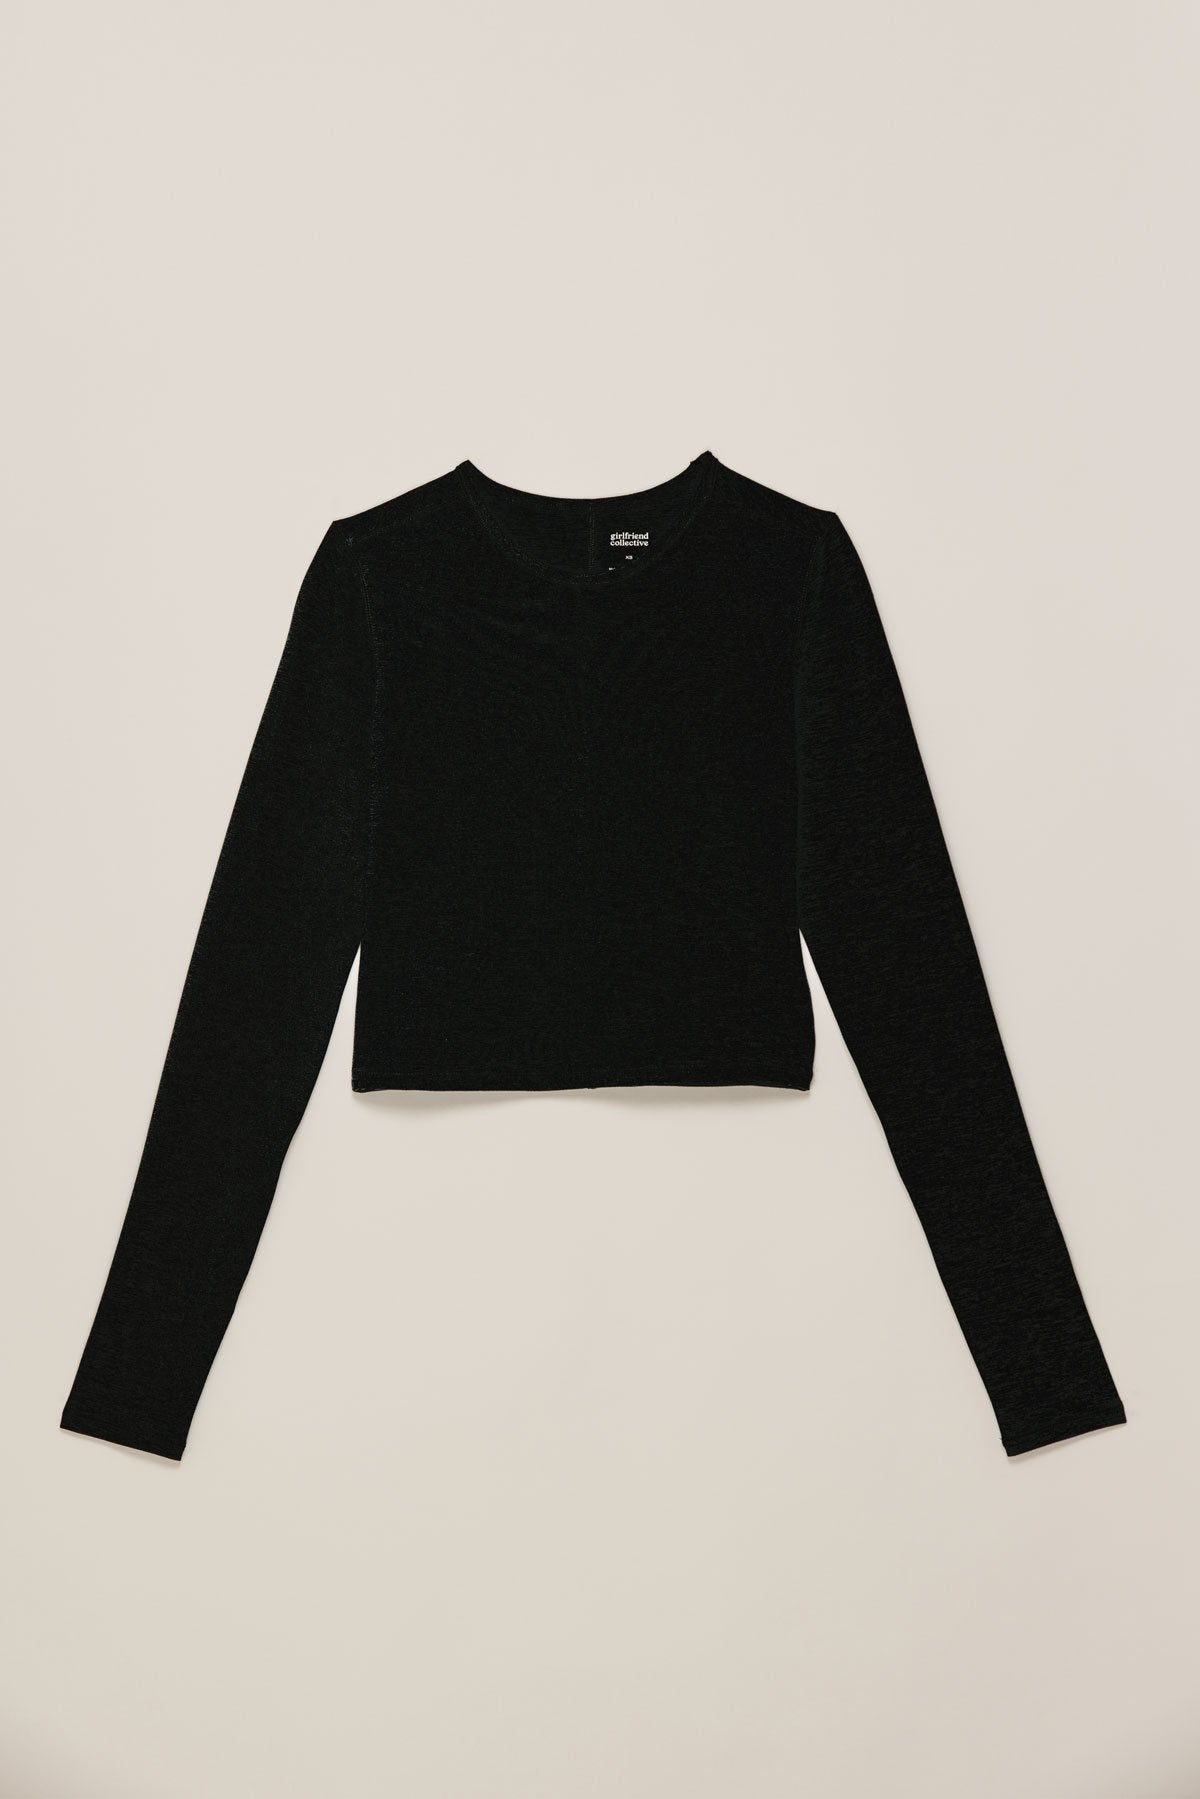 Black Lift Long Sleeve